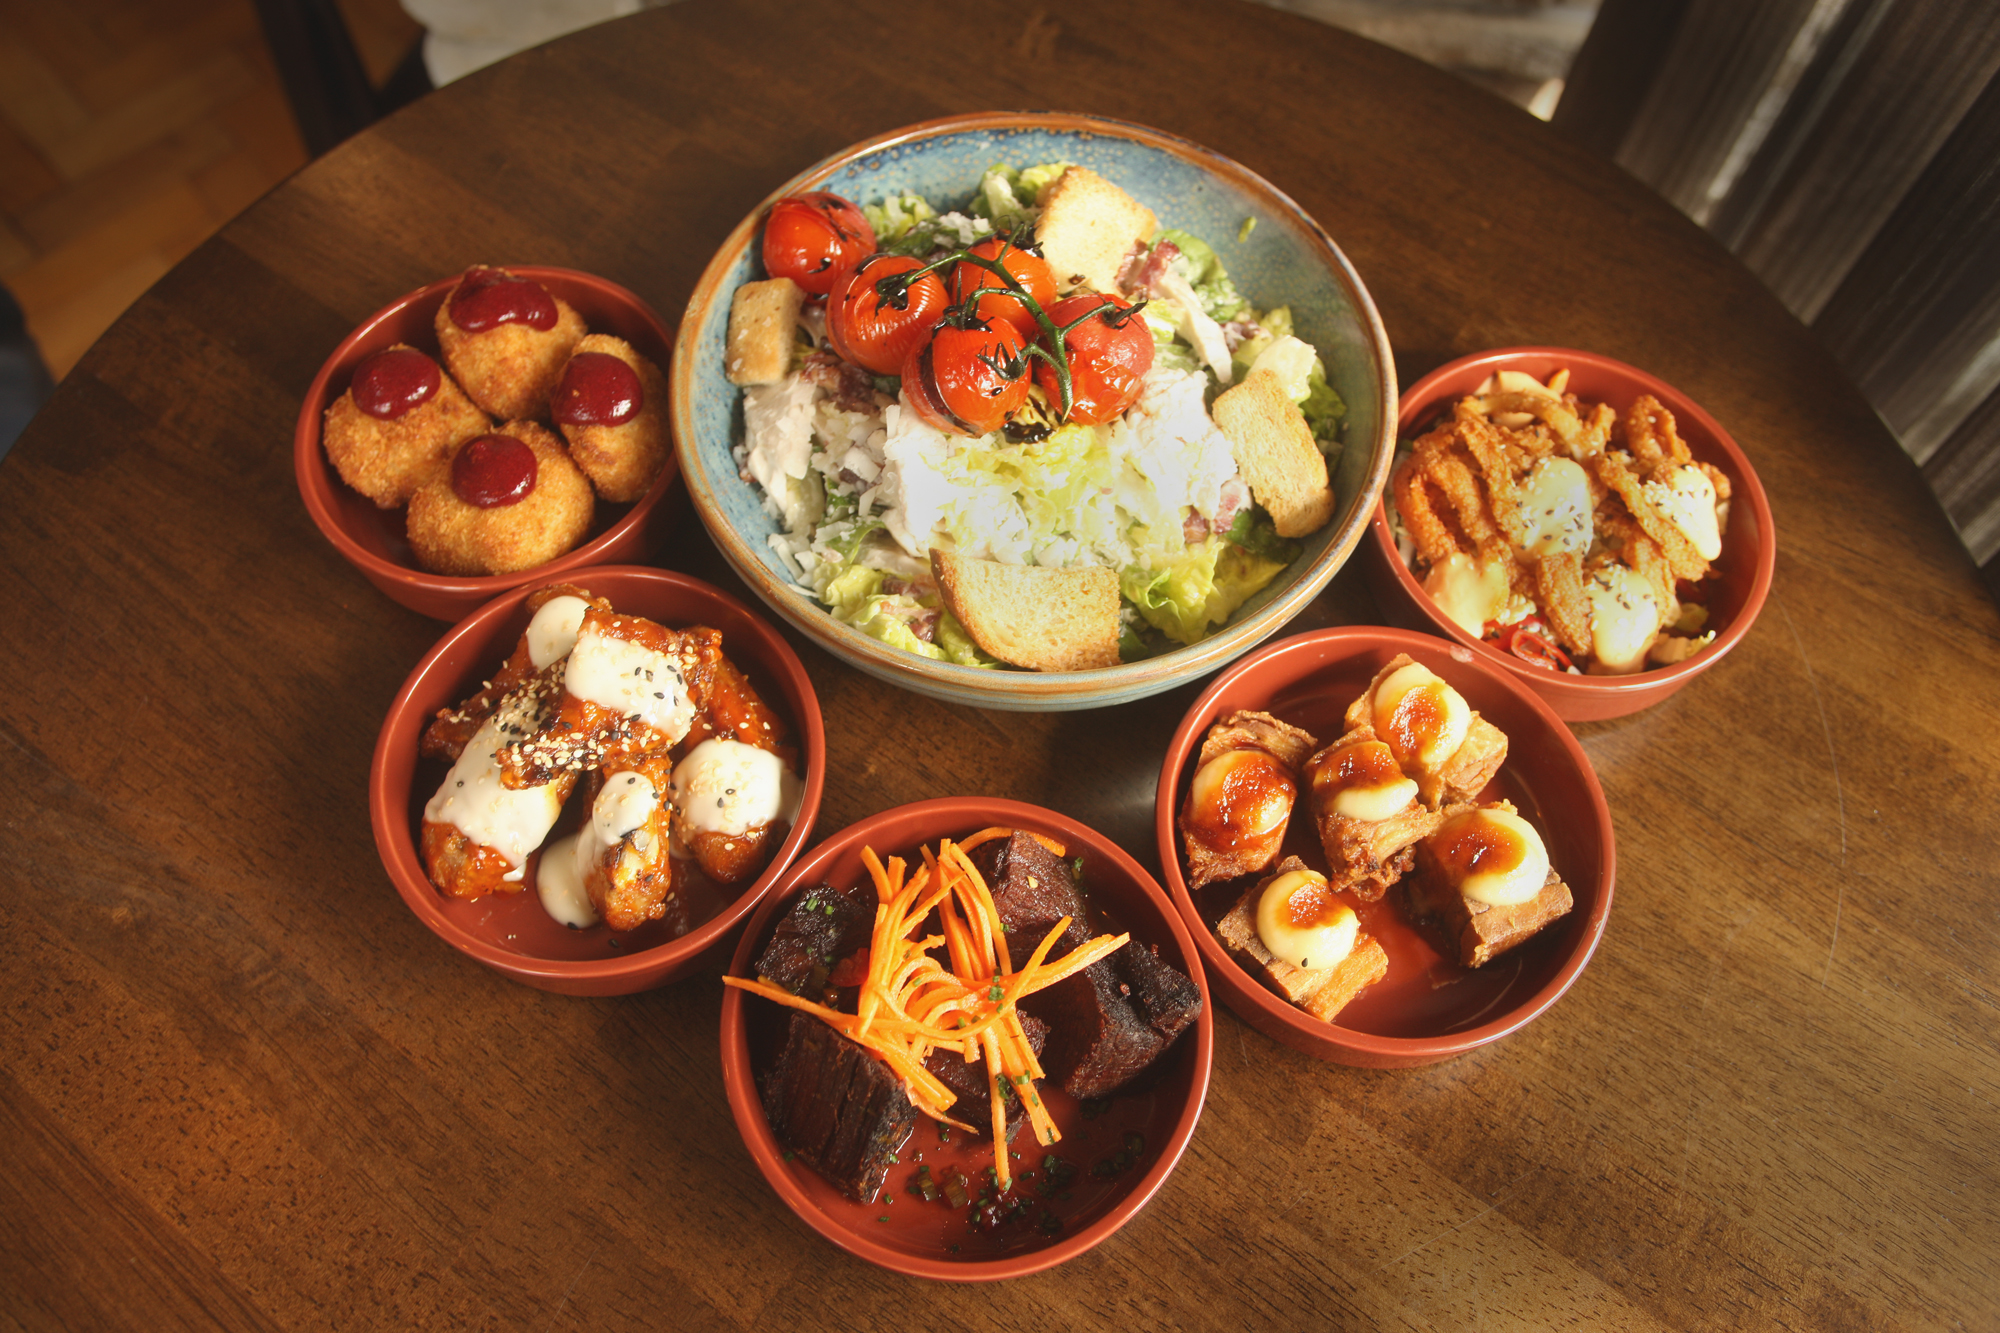 A selection of small plates